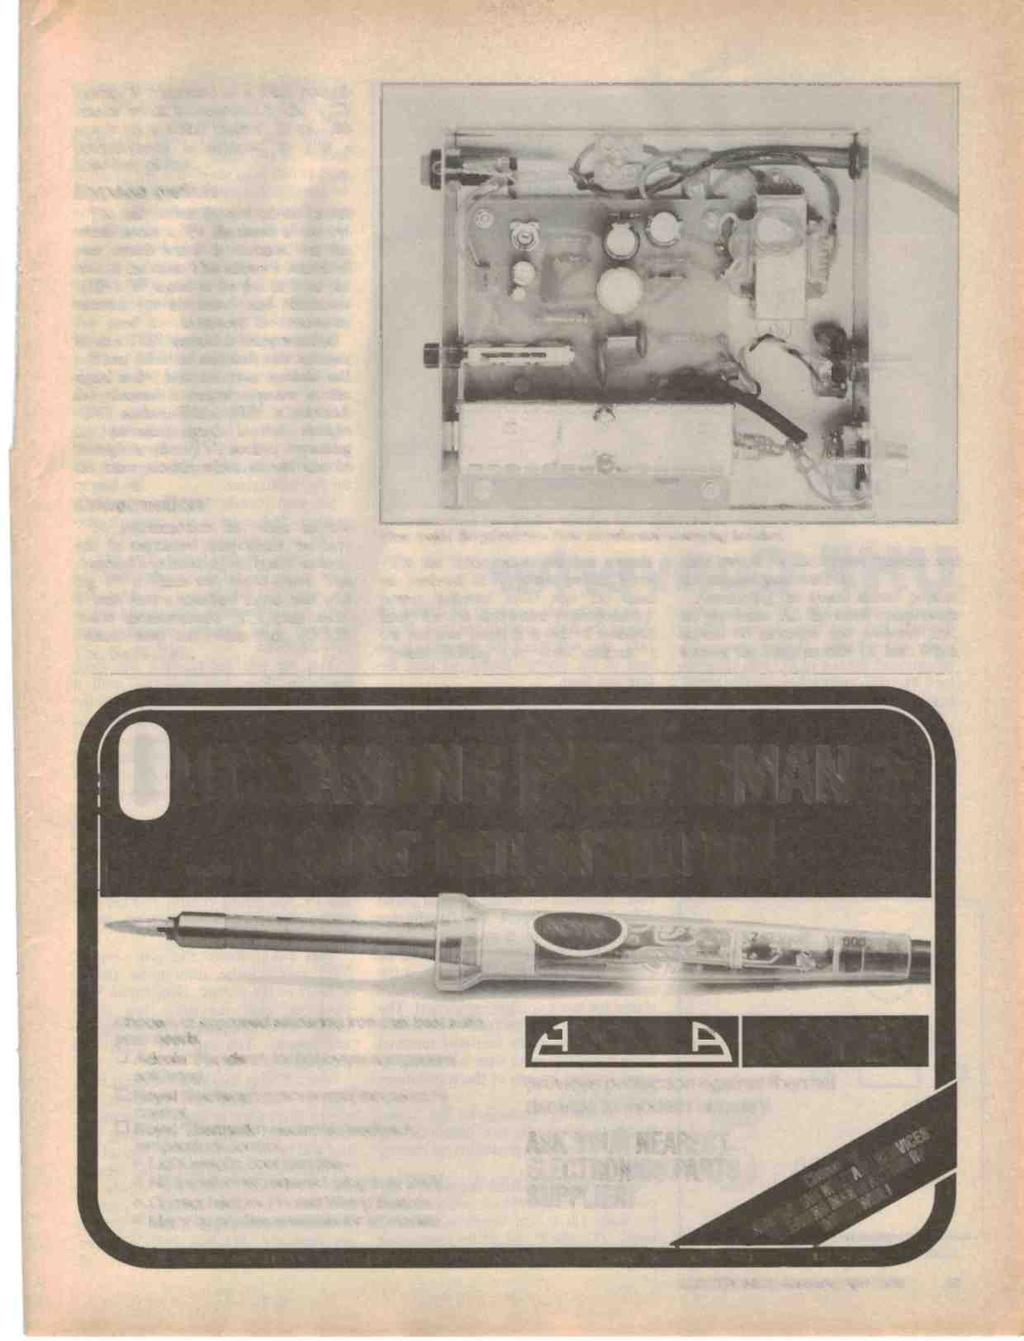 Australias Top Selling Electronics Magazine April 1986 Aust Metal Detector Into A Lrl Long Range Locator Friendly Module Is Connected To 20kfi Potentiometer Which The 12v Supply Via